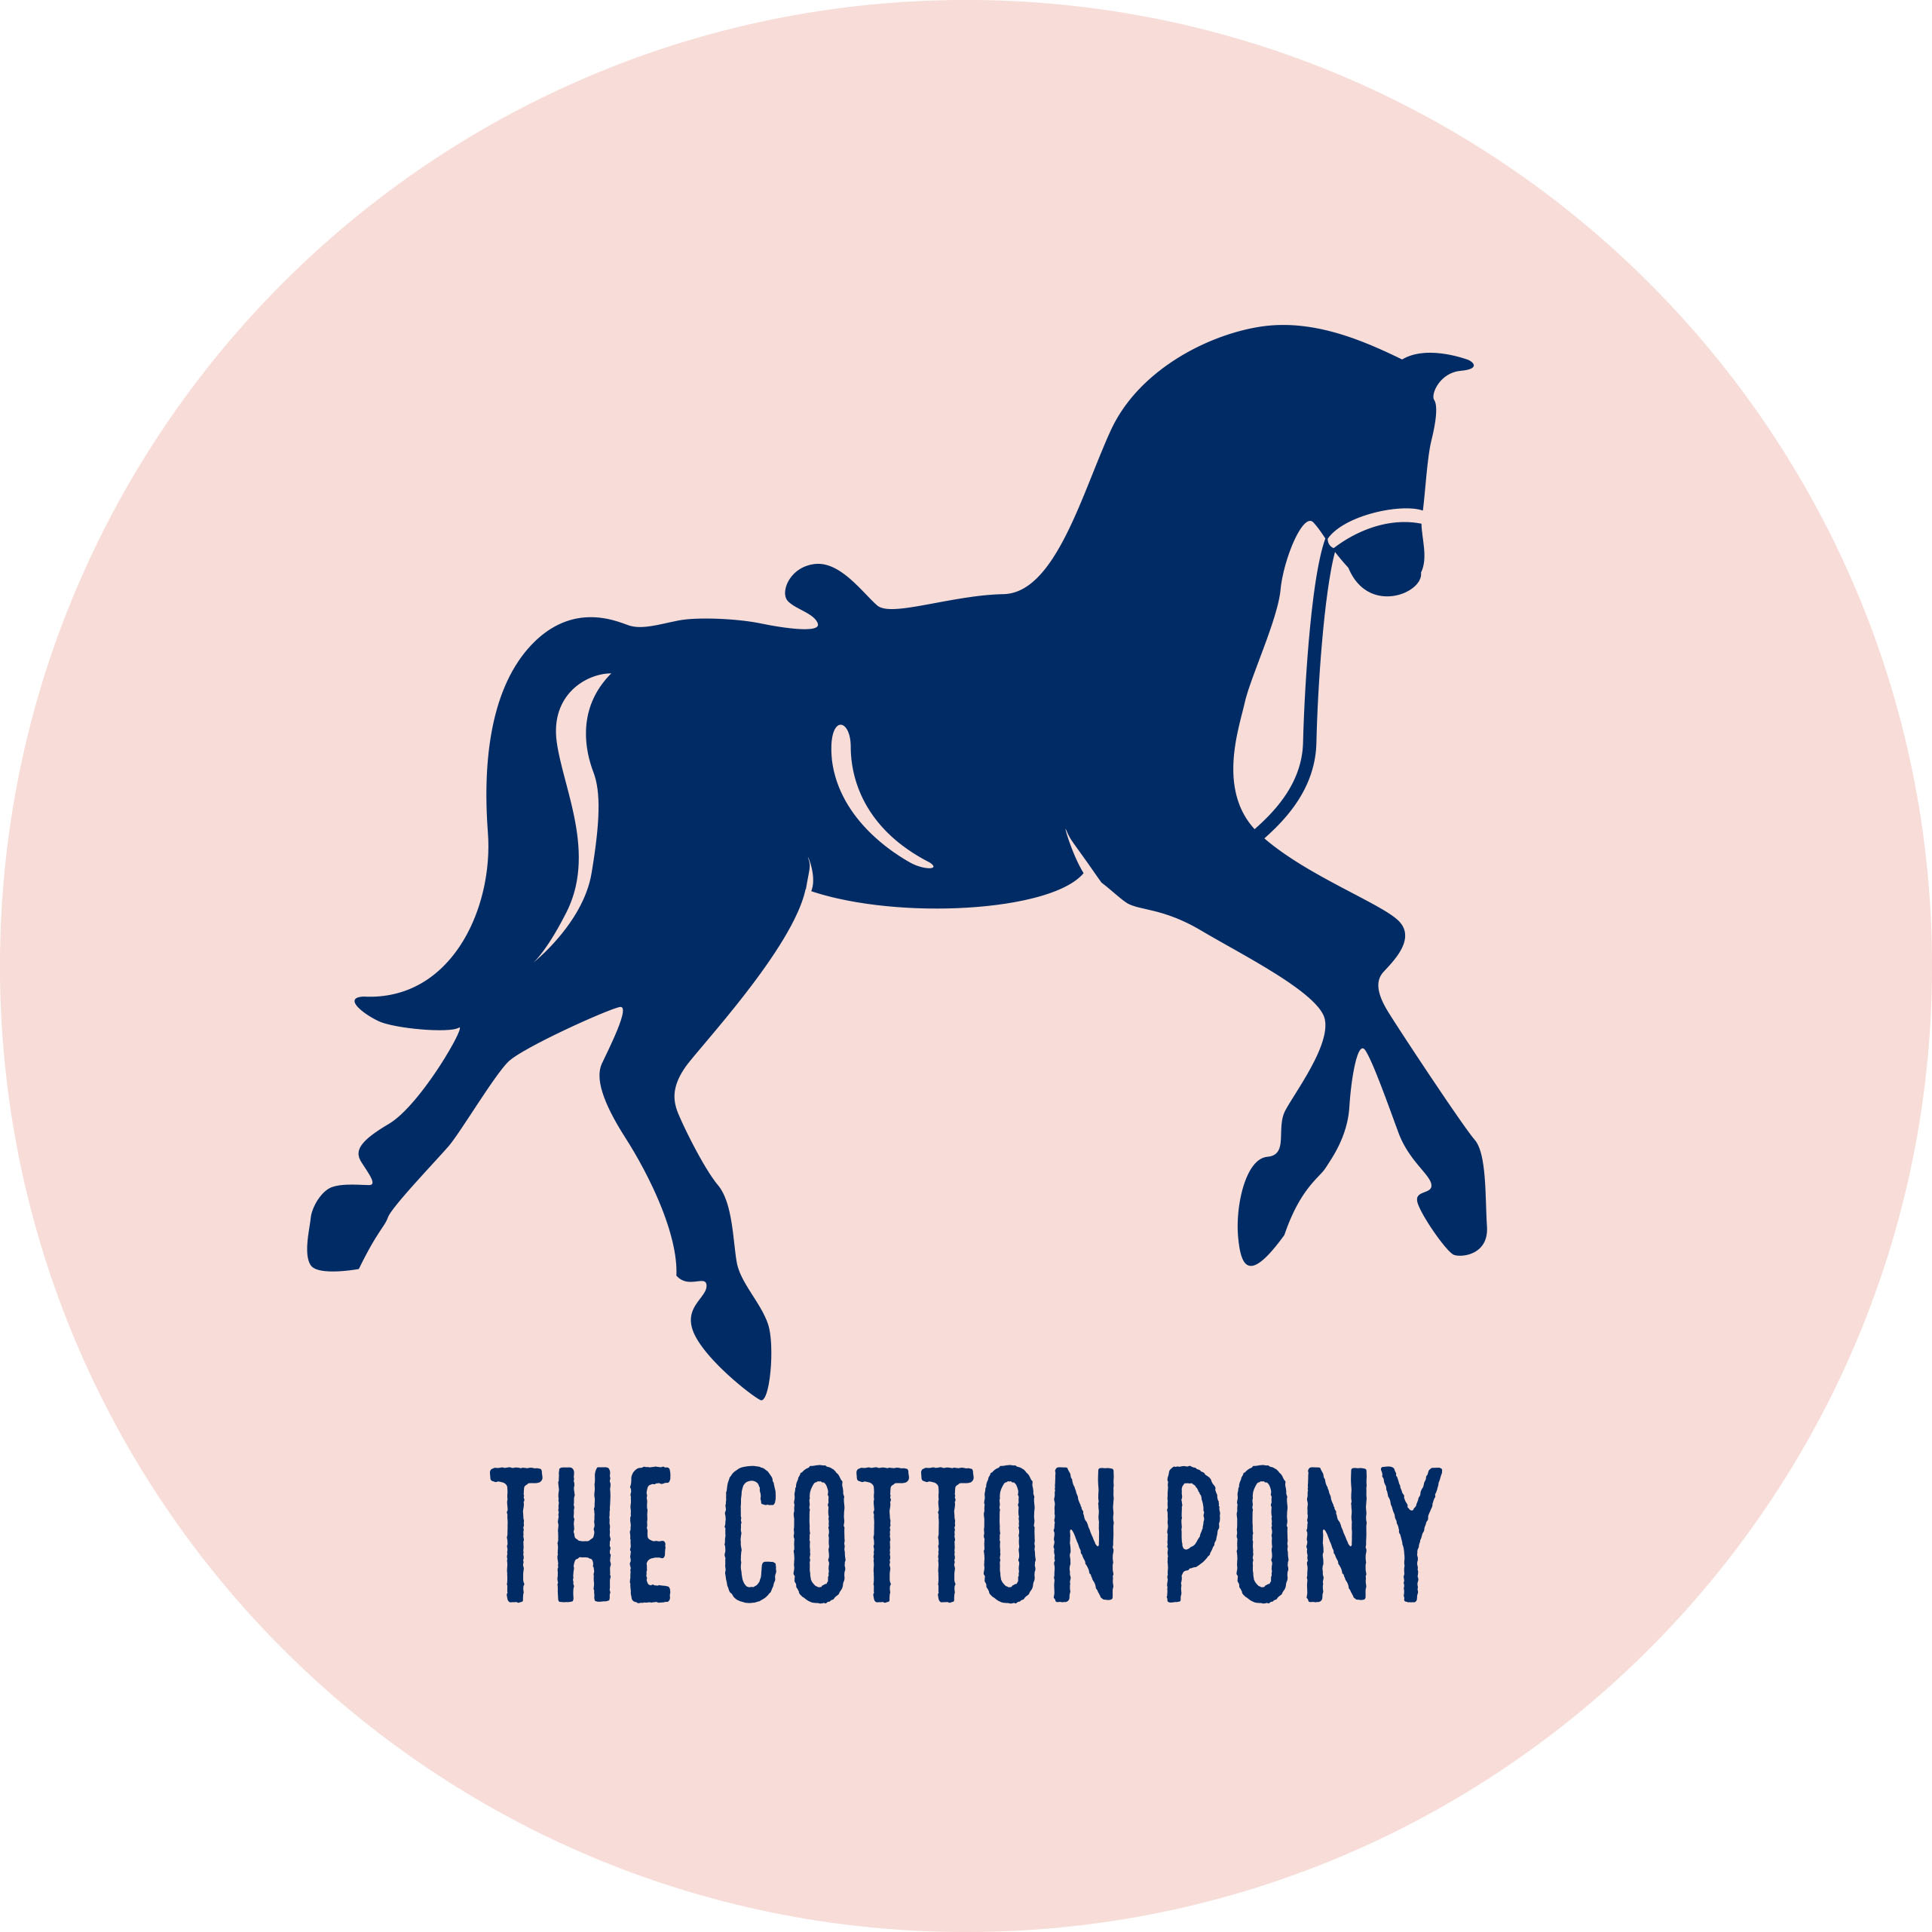 The Cotton Pony Limited